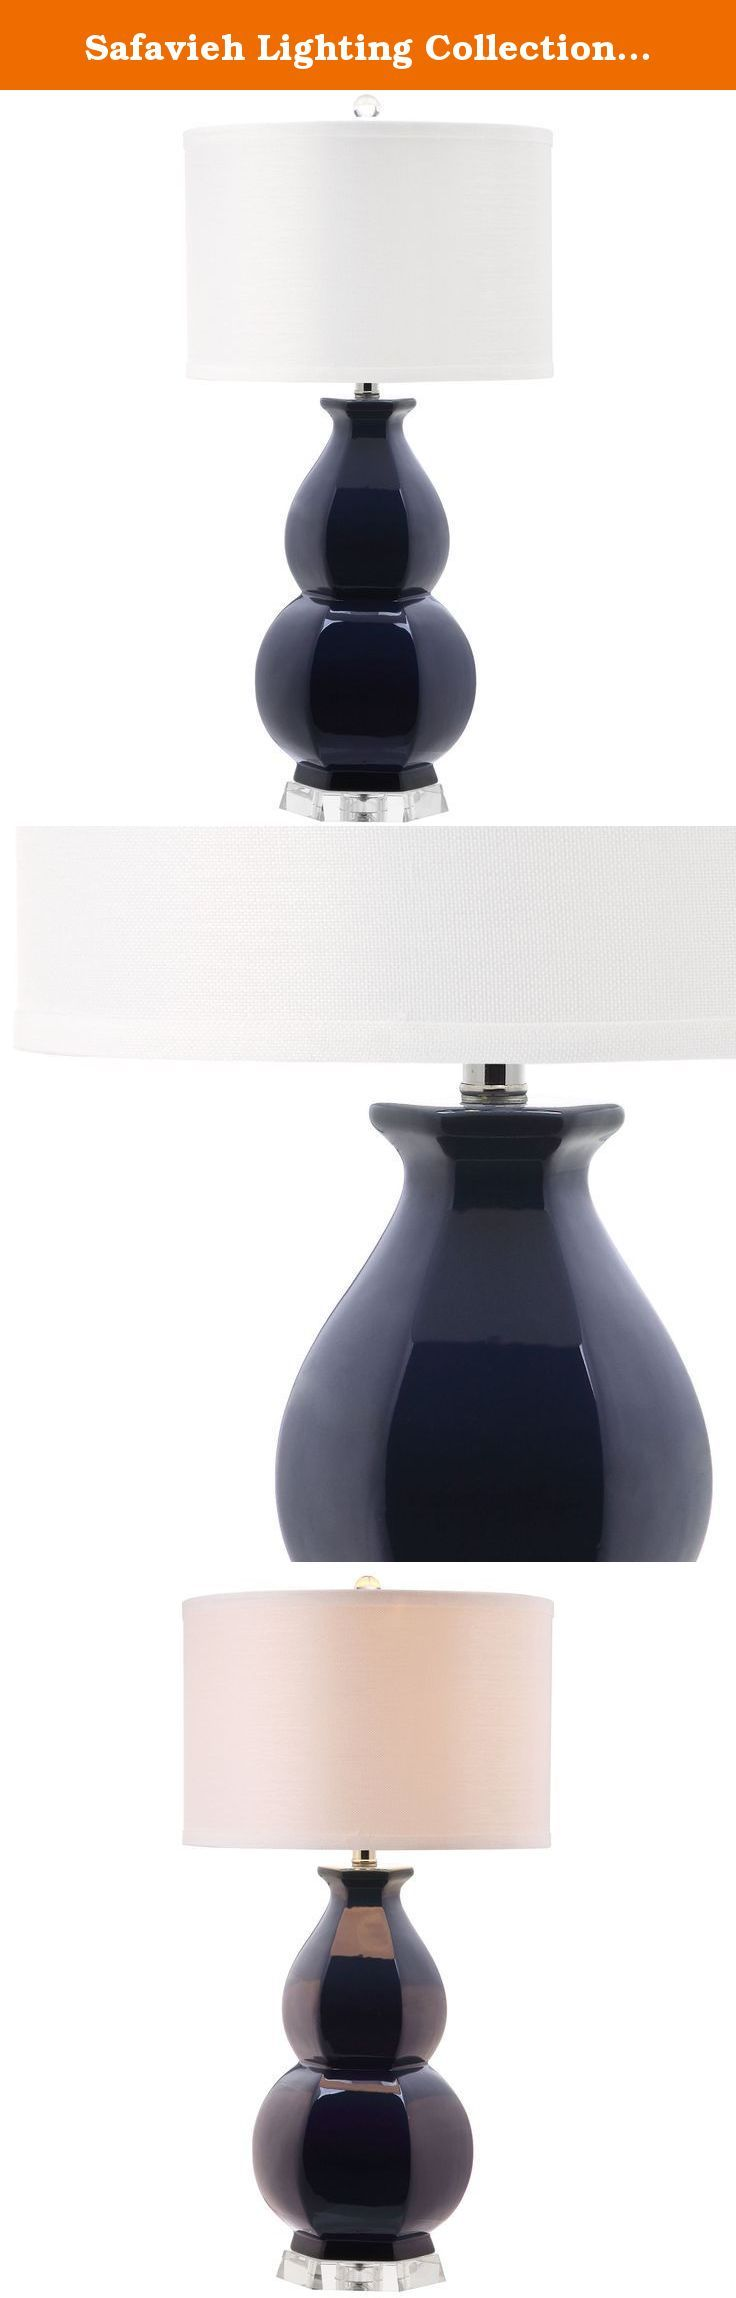 Safavieh Lighting Collection Jinuper Navy Navy 30.25-inch Table Lamp. A classic double gourd ceramic base gets a fashion update with faceted detailing in the navy blue juniper table lamp. This striking transitional lamp is finished with textured white cotton drum shade and modern see-through acrylic pedestal and finial.